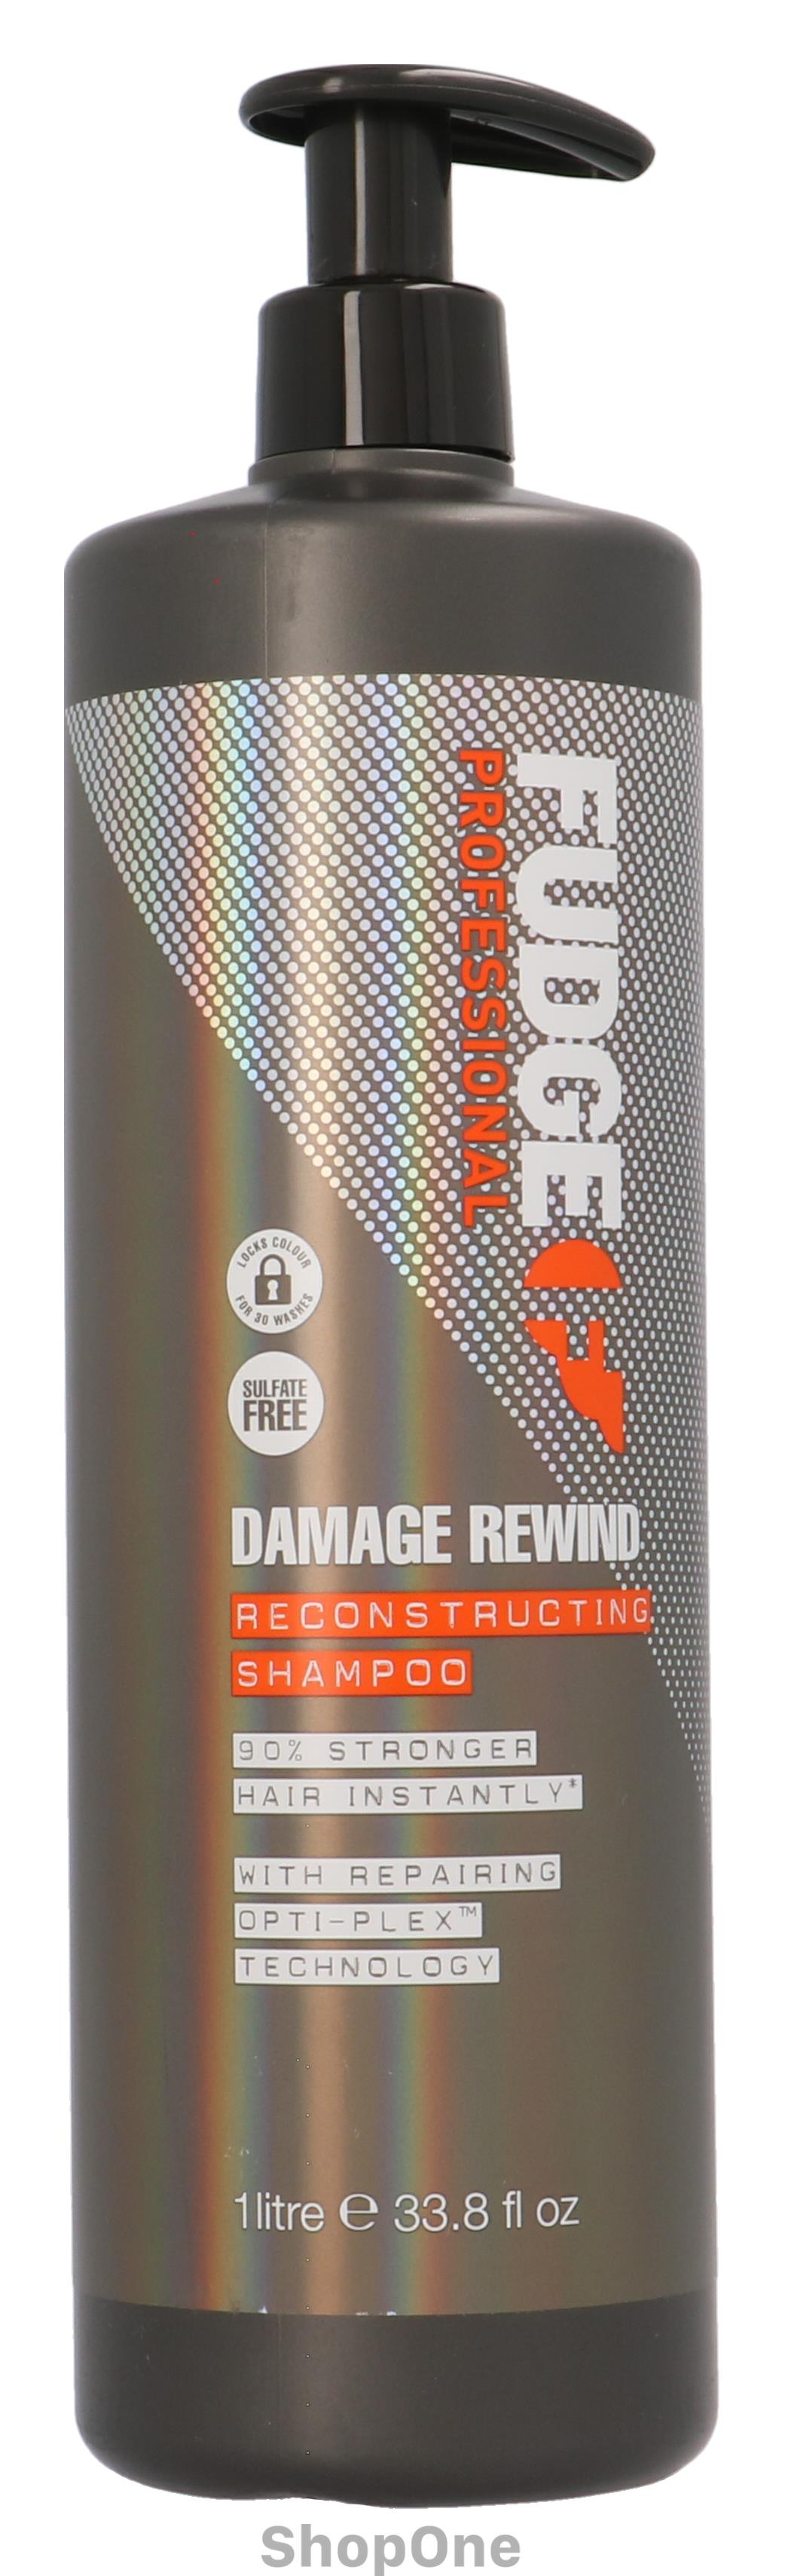 Image of   Damage Rewind Reconstucting Shampoo 1000 ml fra Fudge